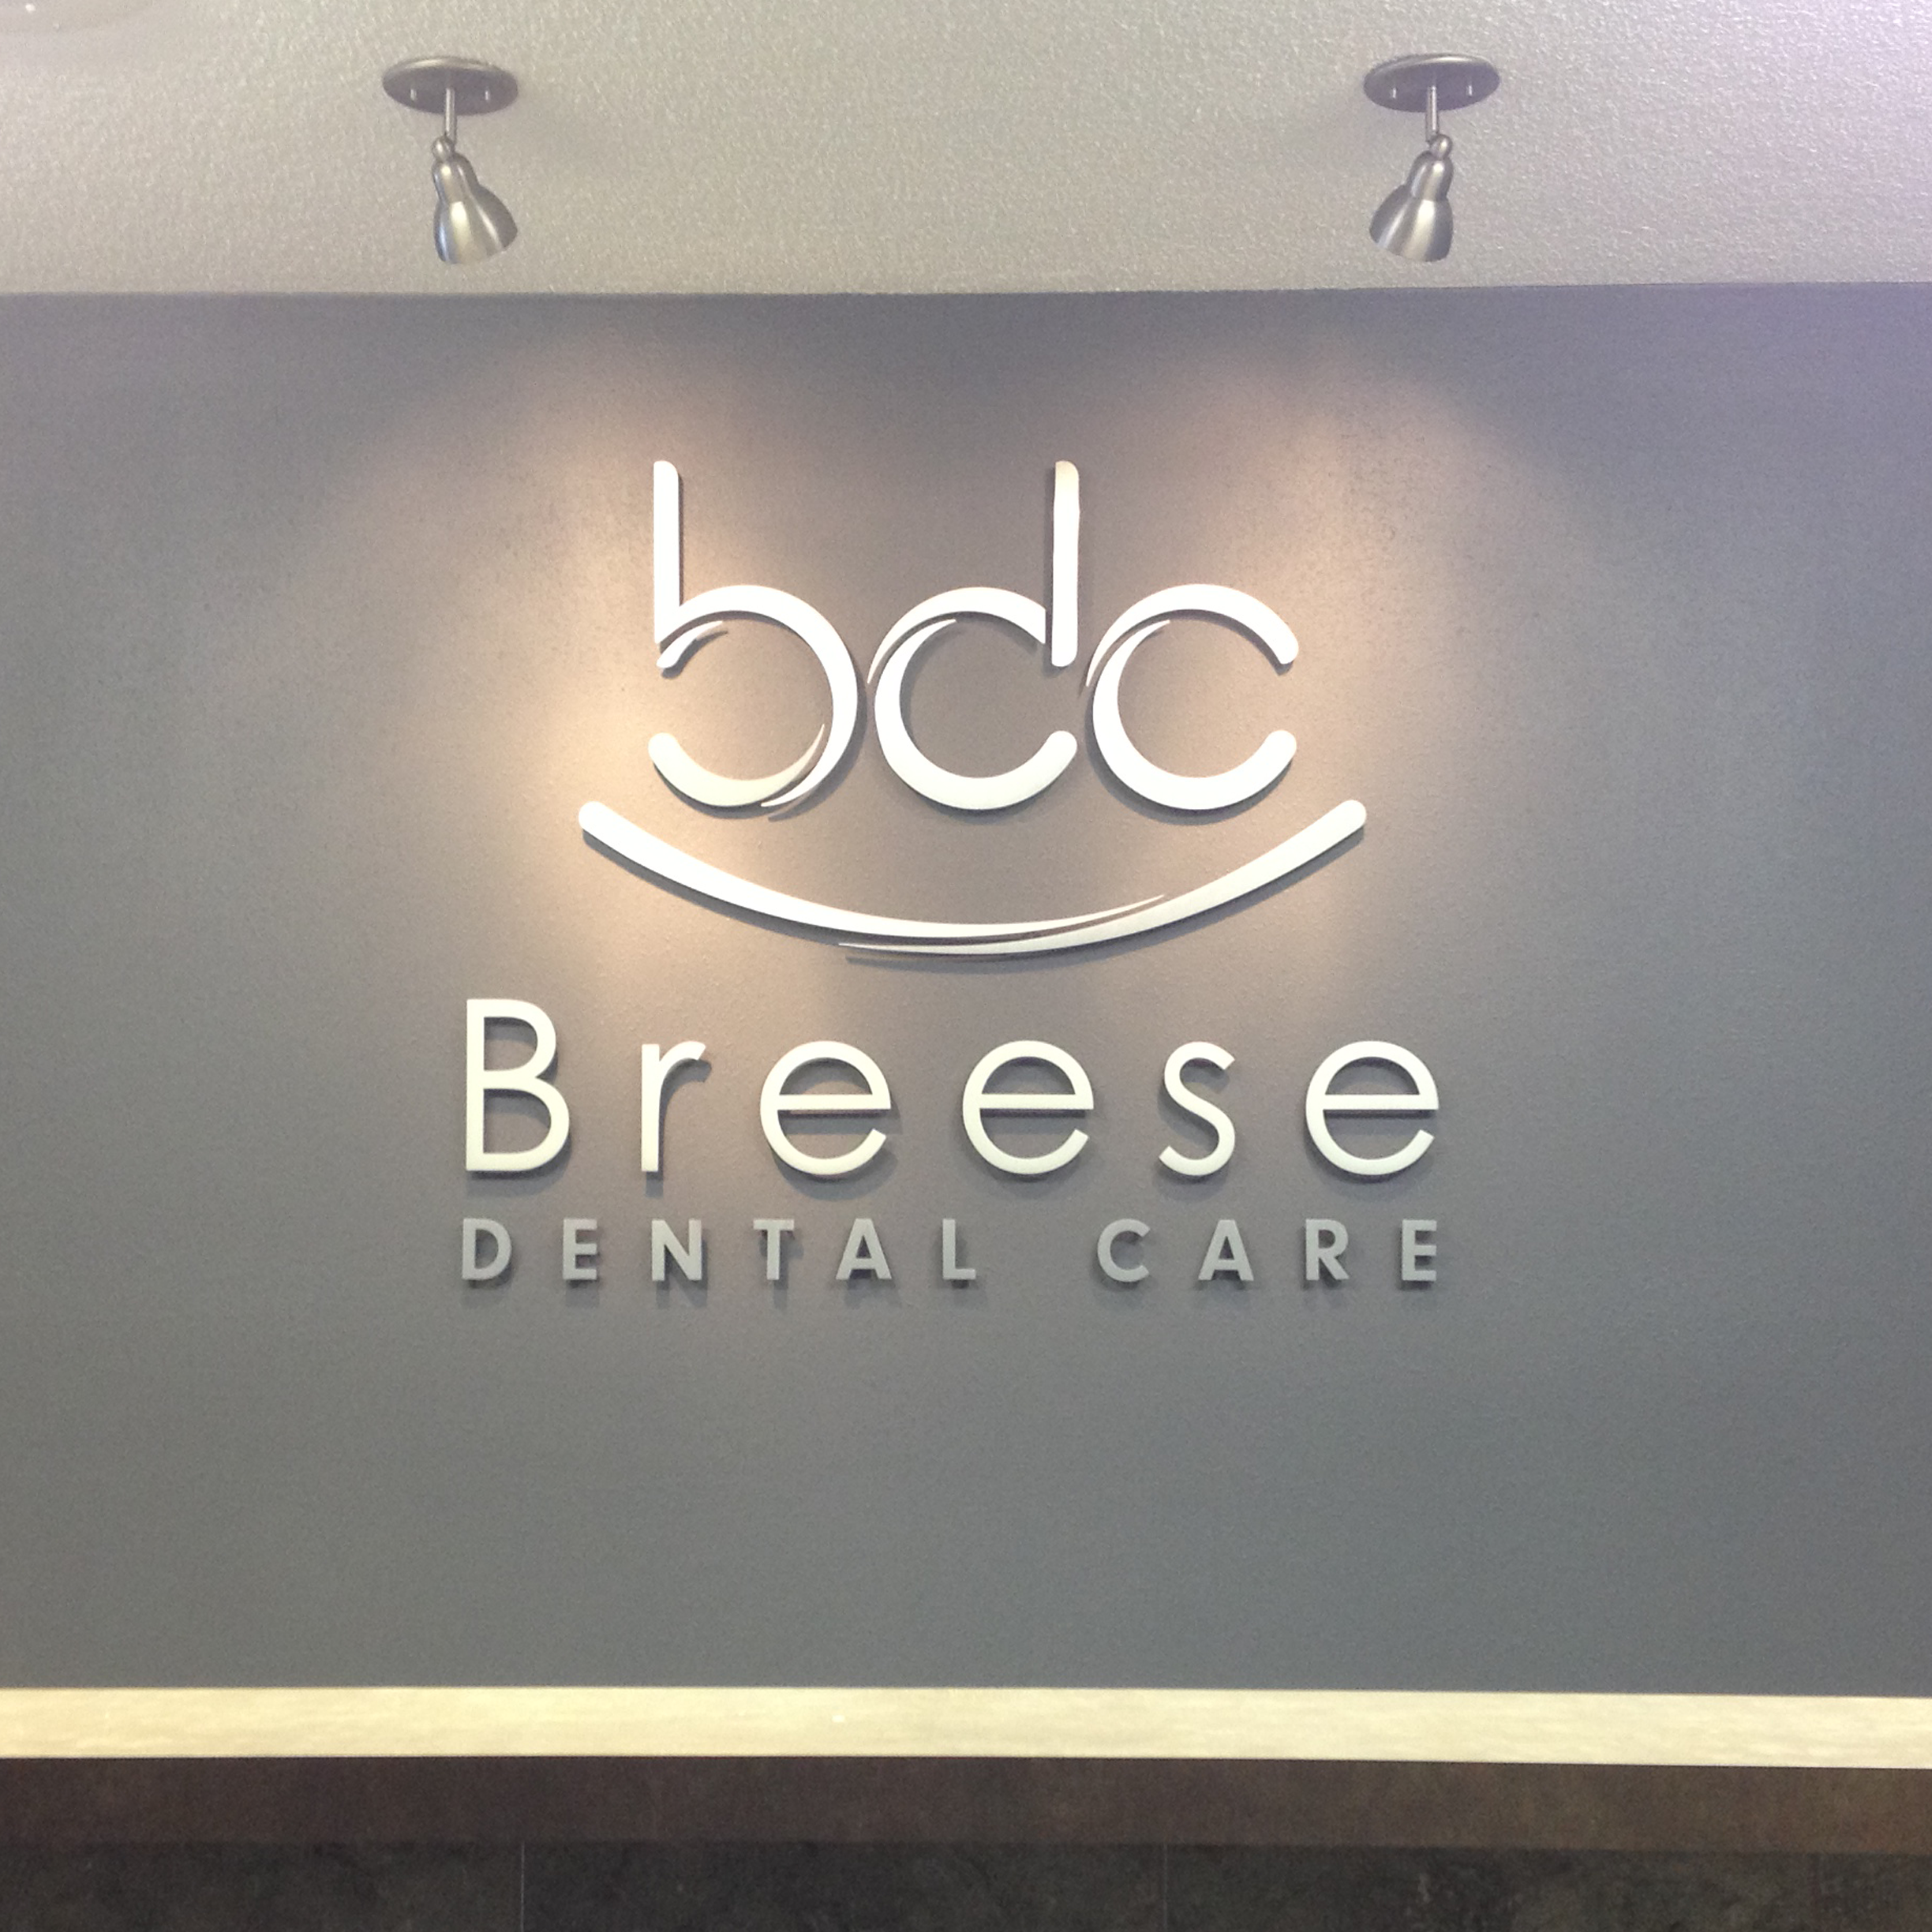 Breese Dental Care Interior Sign